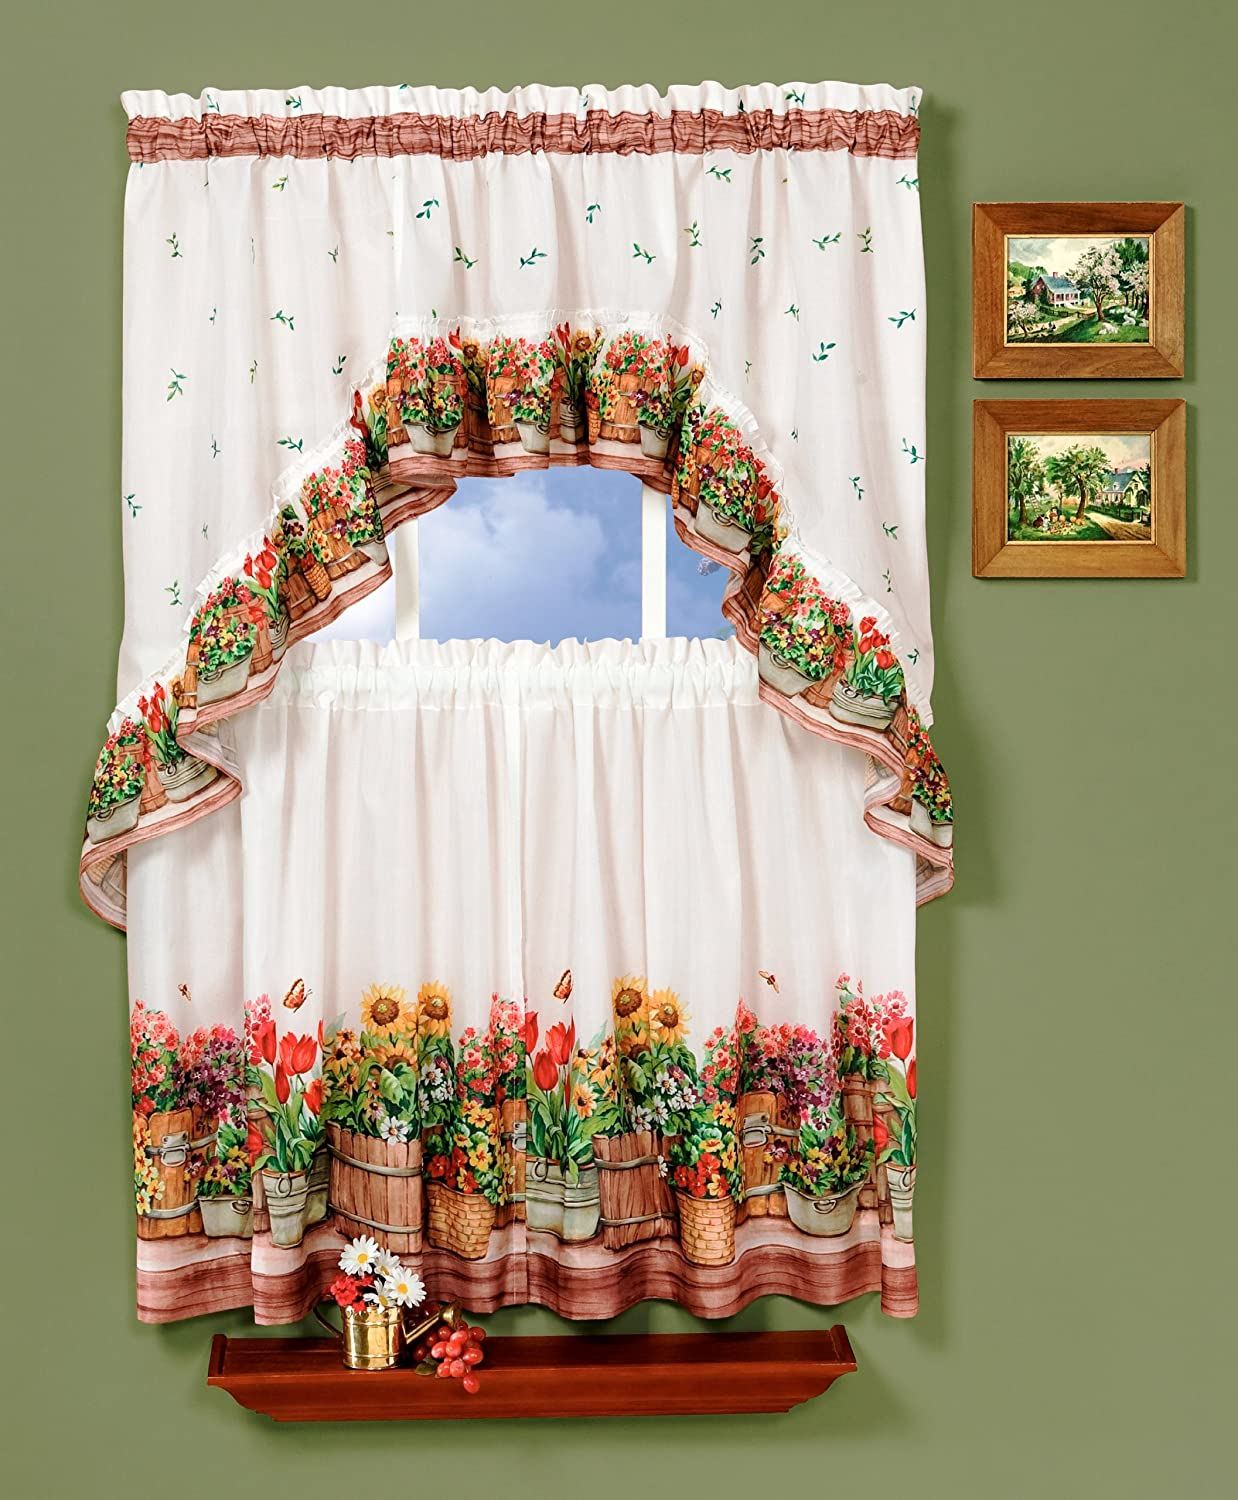 Amazon Com Achim Home Furnishings 57 Country Garden Swag And Tier Kitchen Curtain Set 24 Inch Inch Inch Multi Color Home Kitchen